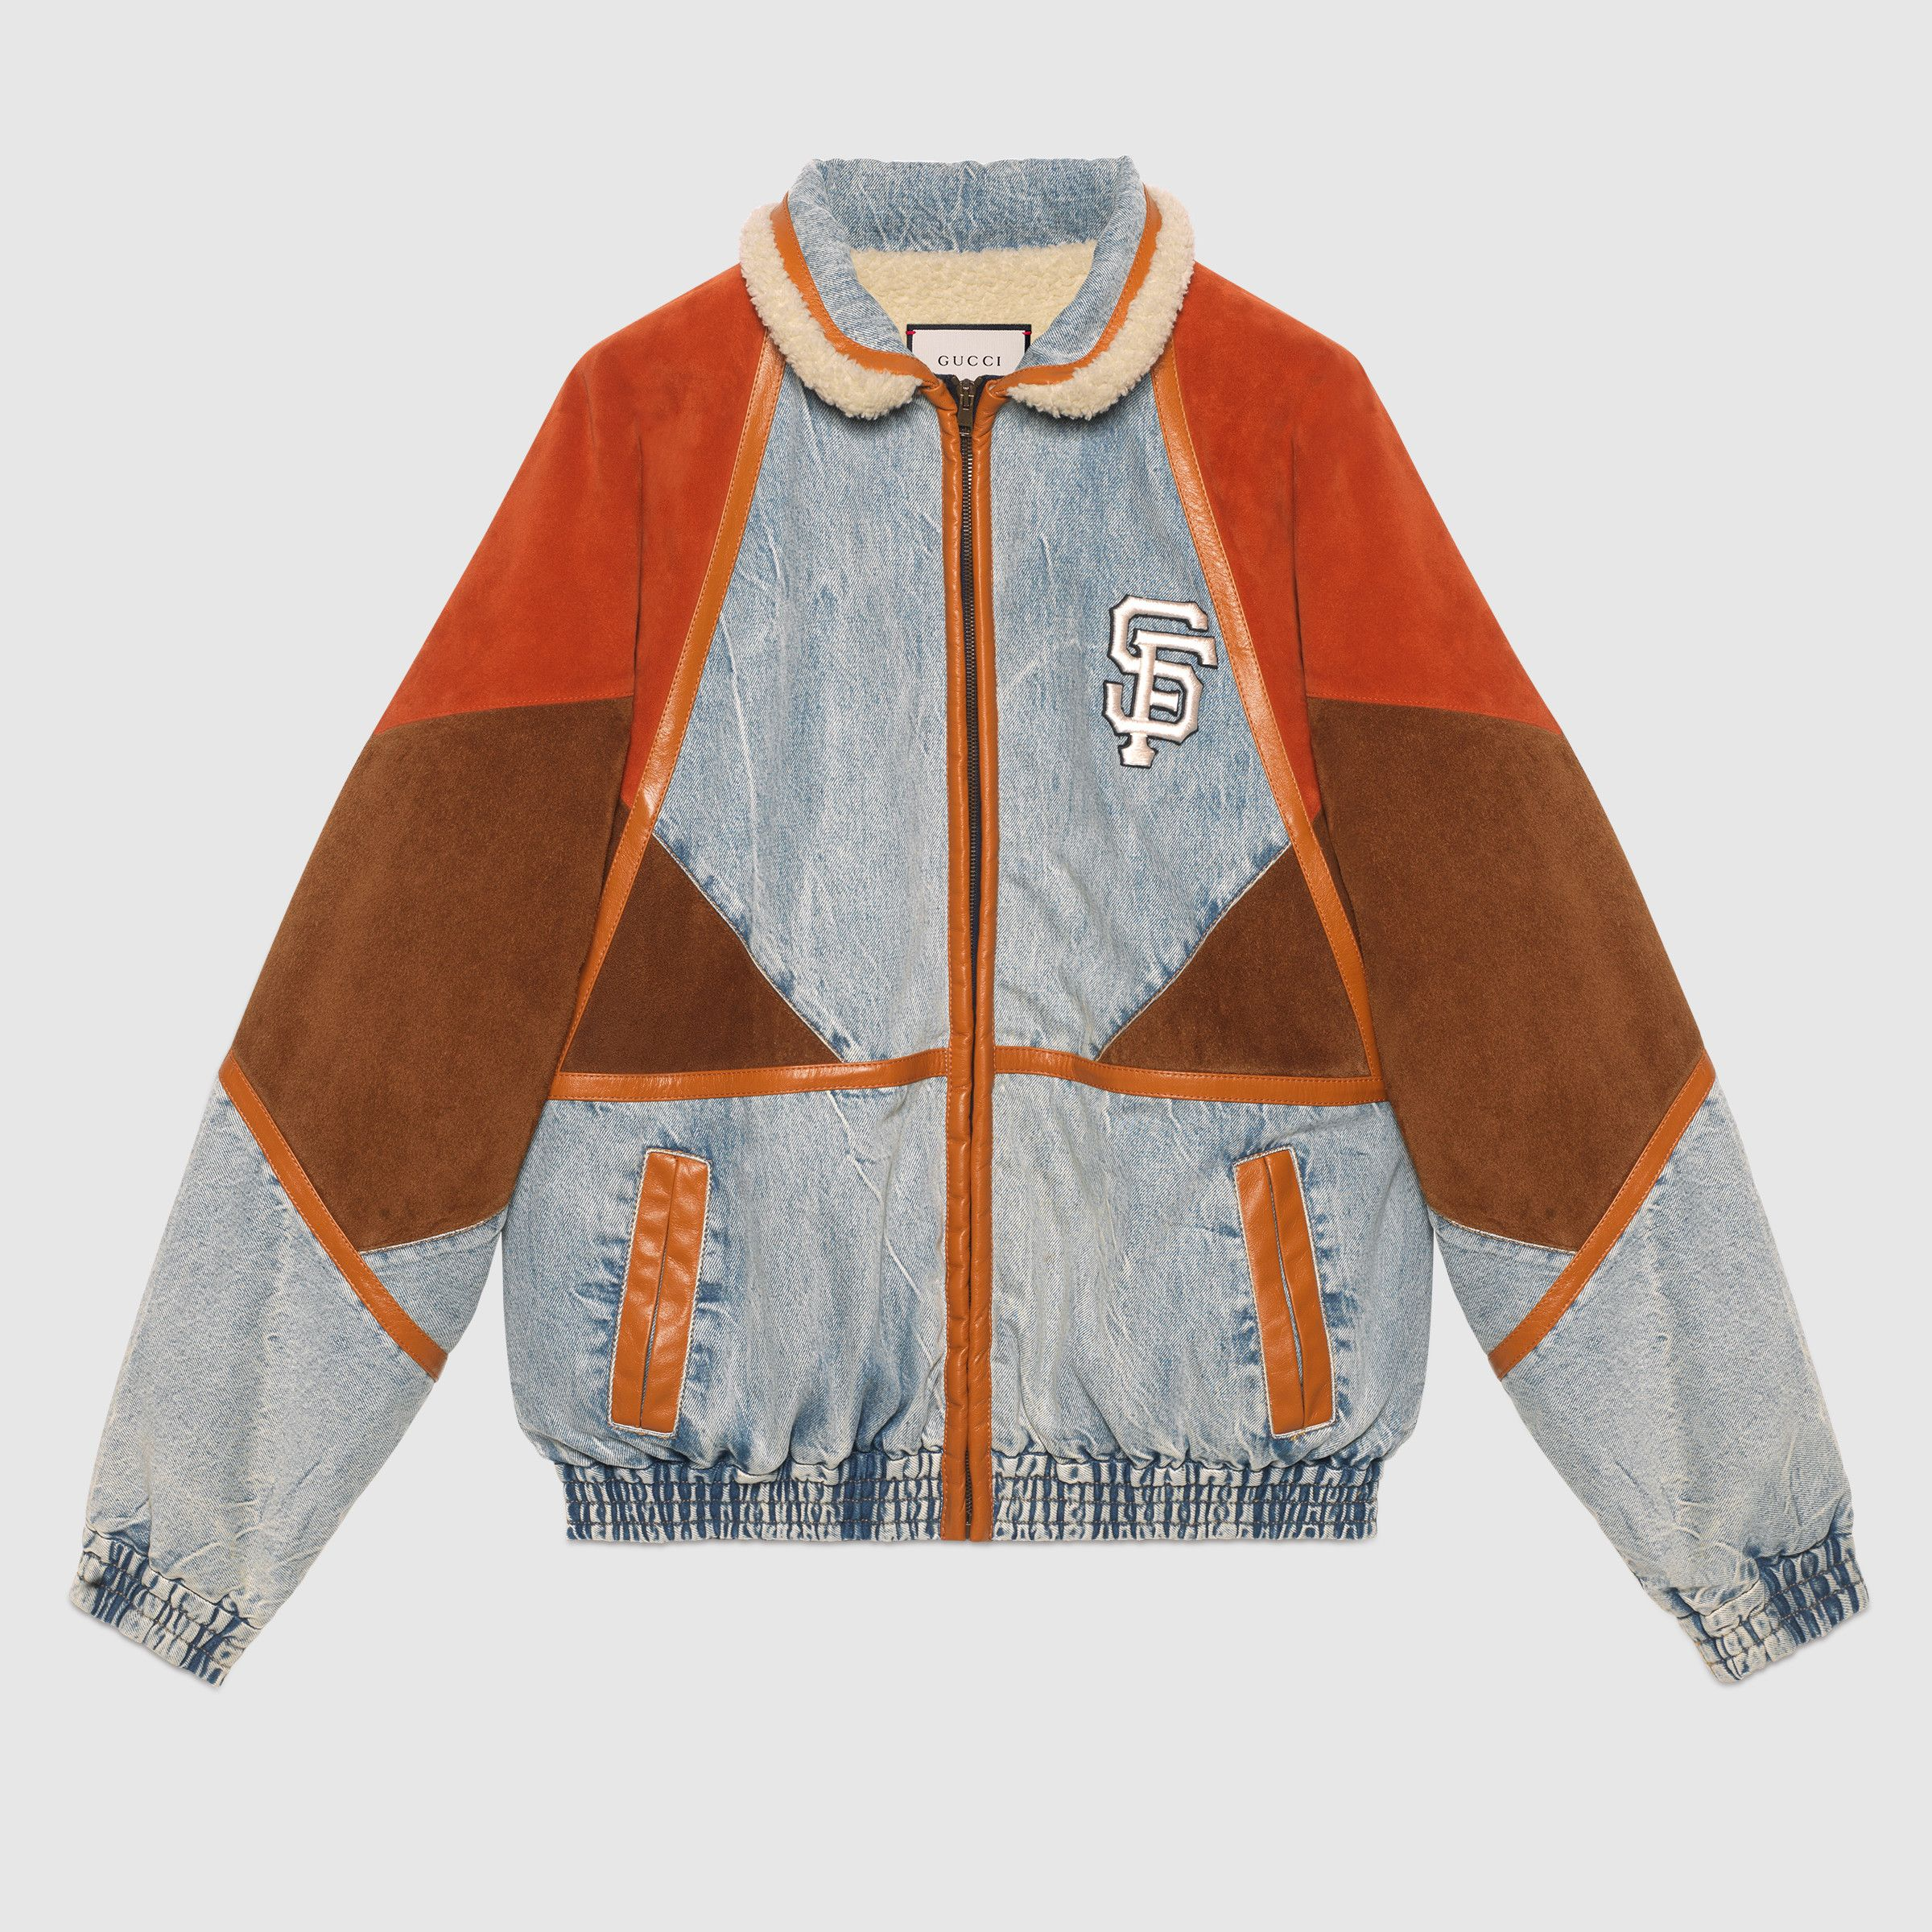 Men S Denim Jacket With Sf Giants Patch In Blue Marble Washed Denim With Brown And Orange Suede Mens Fashion Edgy Mens Fashion Sweaters Mens Fashion Casual [ 2400 x 2400 Pixel ]